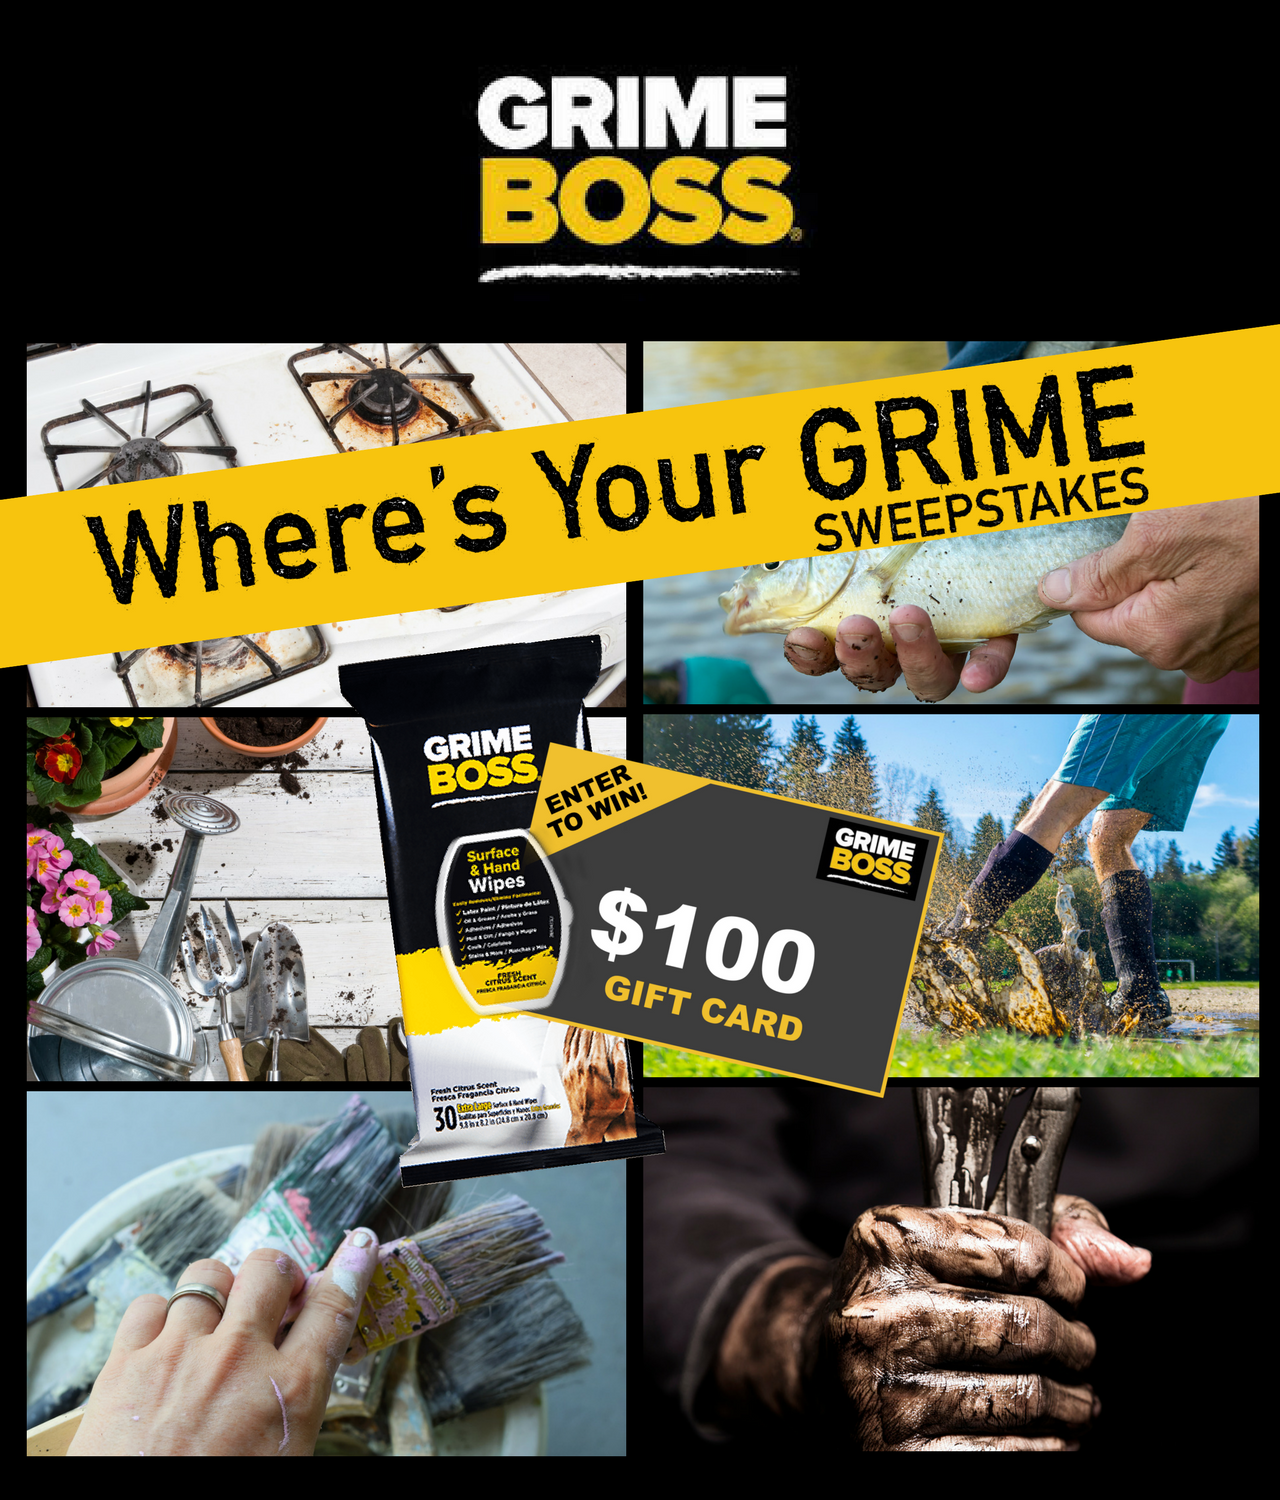 GRIME BOSS Where's Your Grime Sweepstakes (3 Winners) Enter for your chance to win a $100 gift card from a key GB retailer (Bass Pro, Cabela's, Home Depot, Lowe's, Walmart) based on the biggest cause of their GRIME and a pack of GRIME BOSS Hand & Surface Wipes.